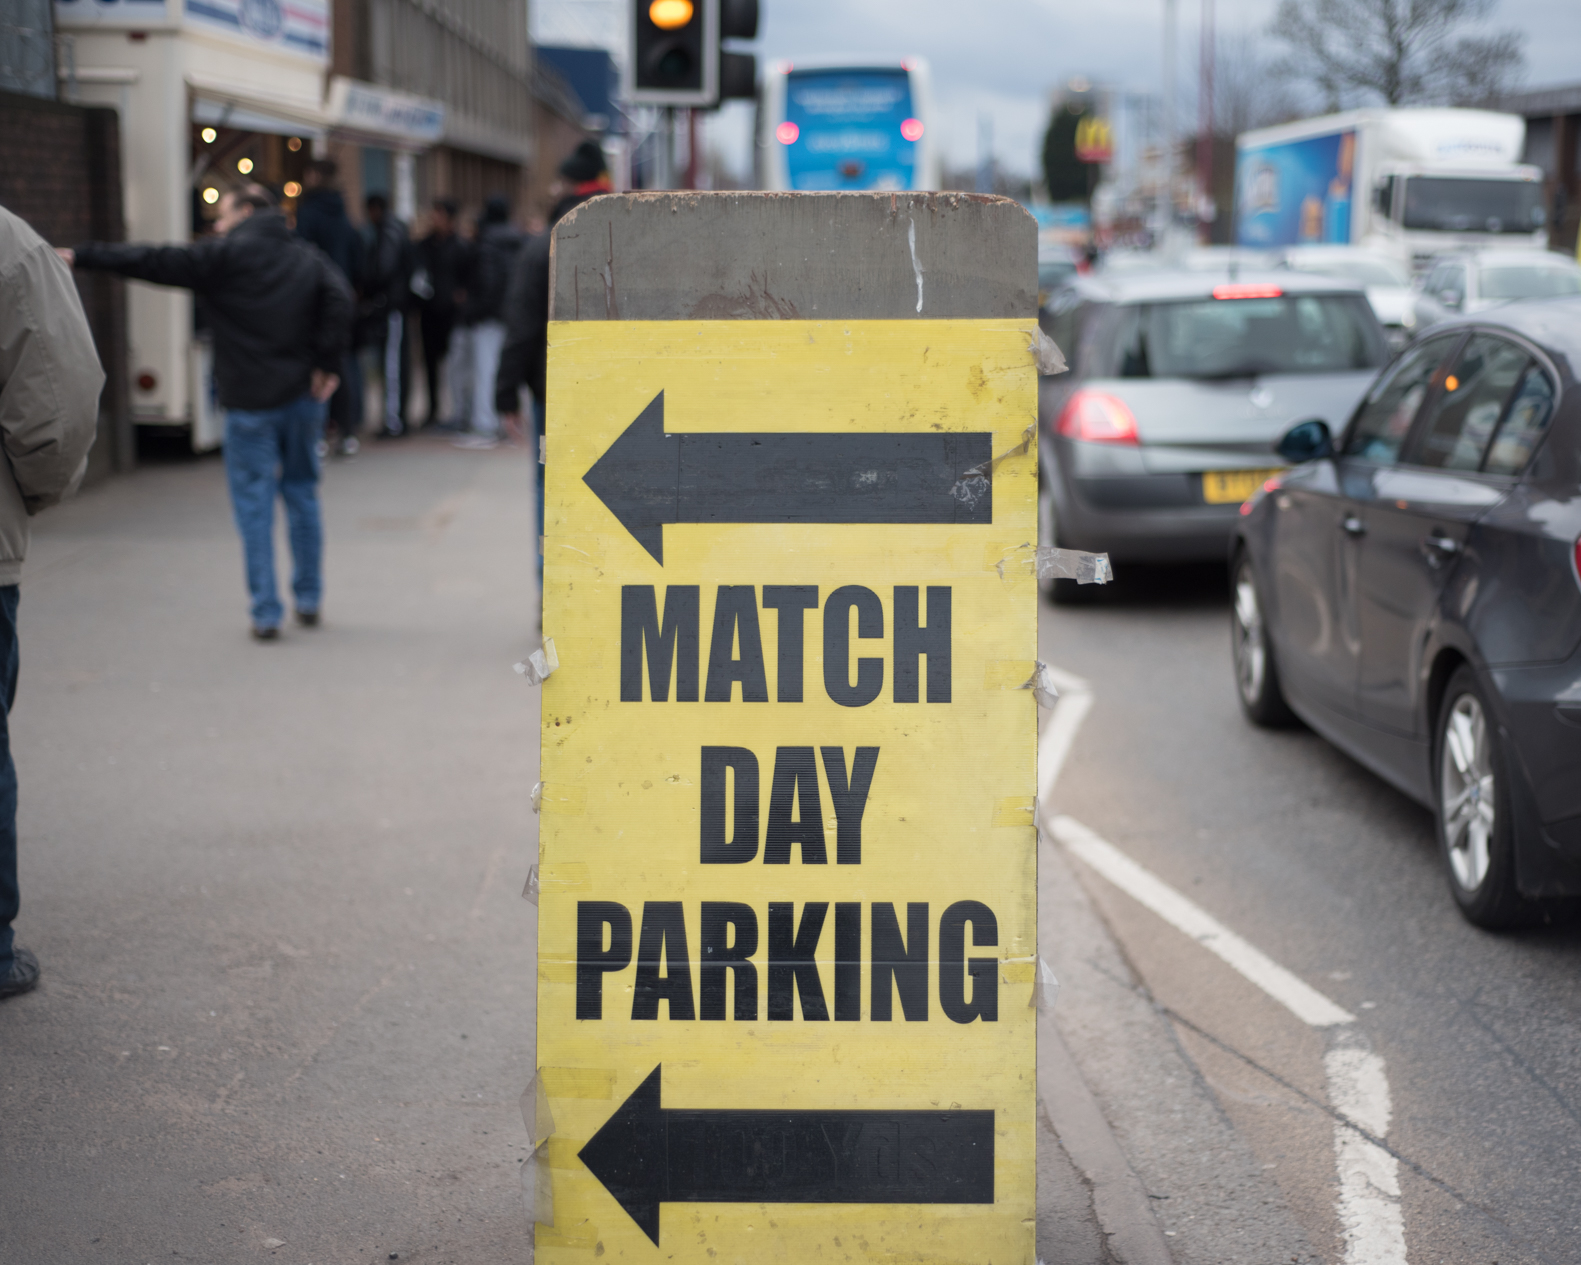 ⬅︎  Match Day Parking  ⬅